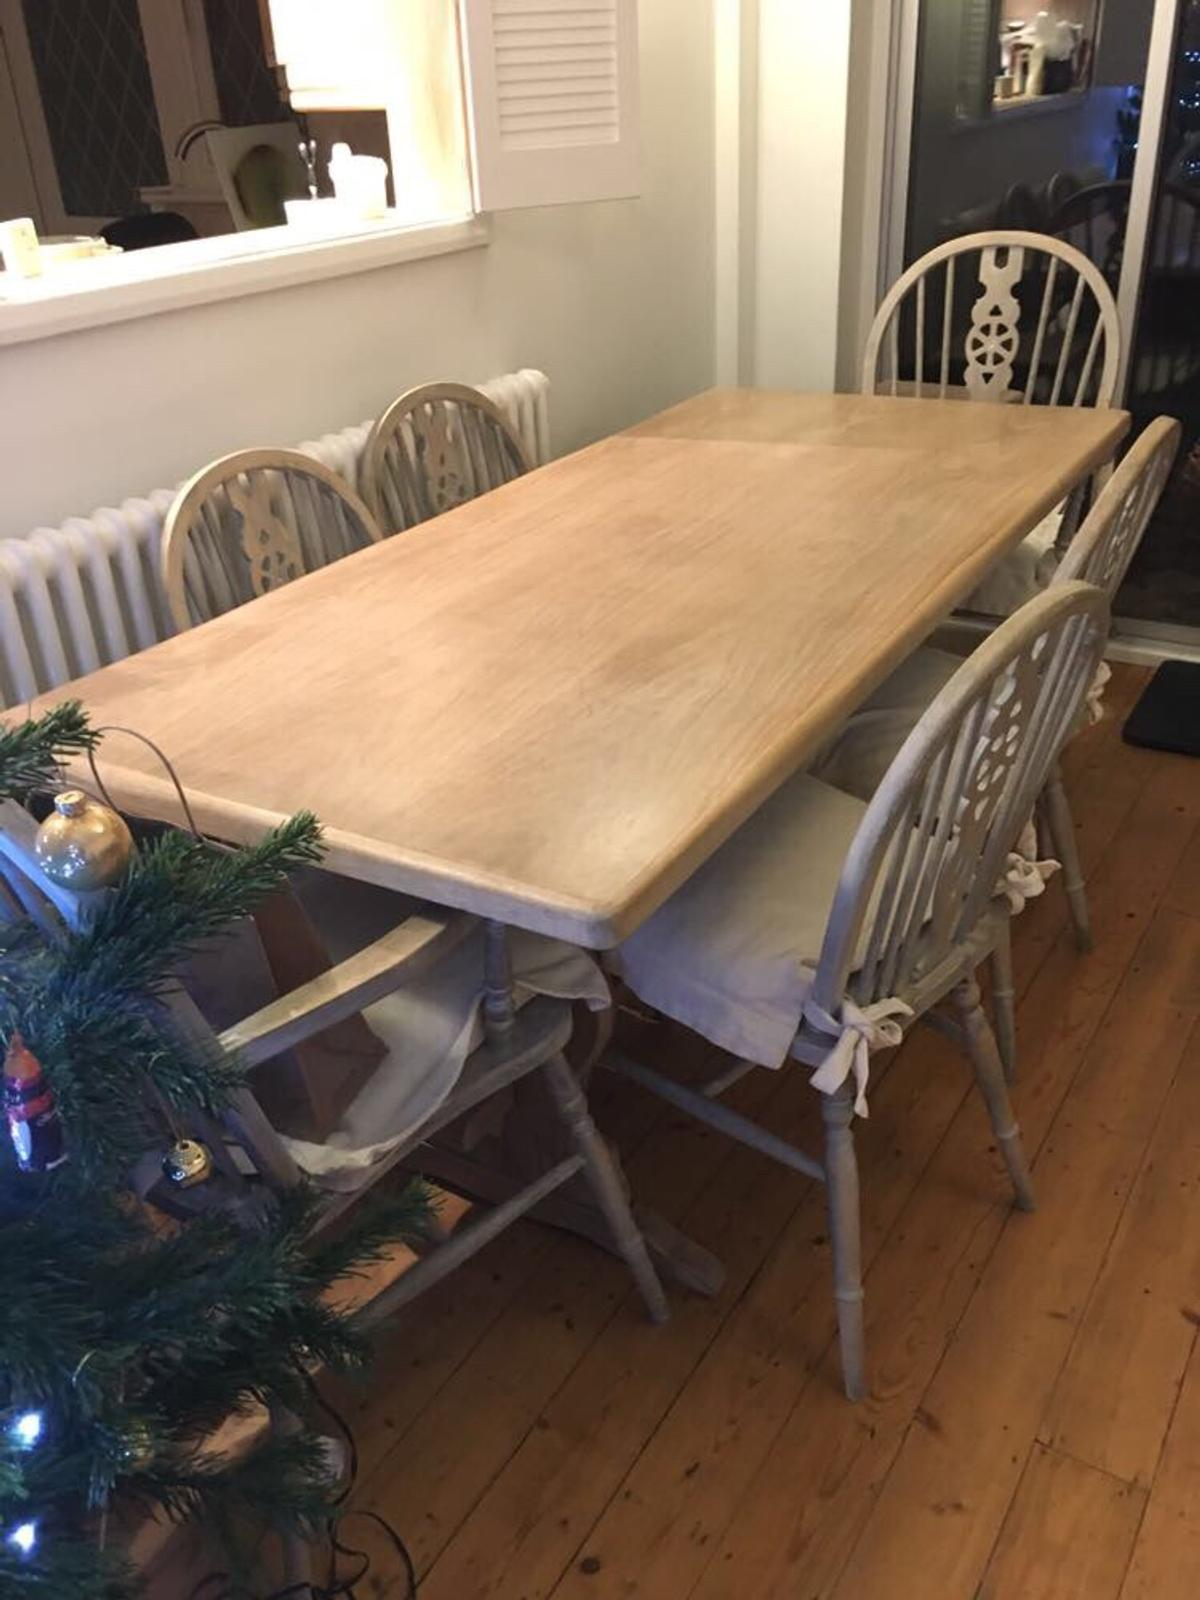 Limed Oak Dining Table And 6 Chairs In DA17 Bexley For ...